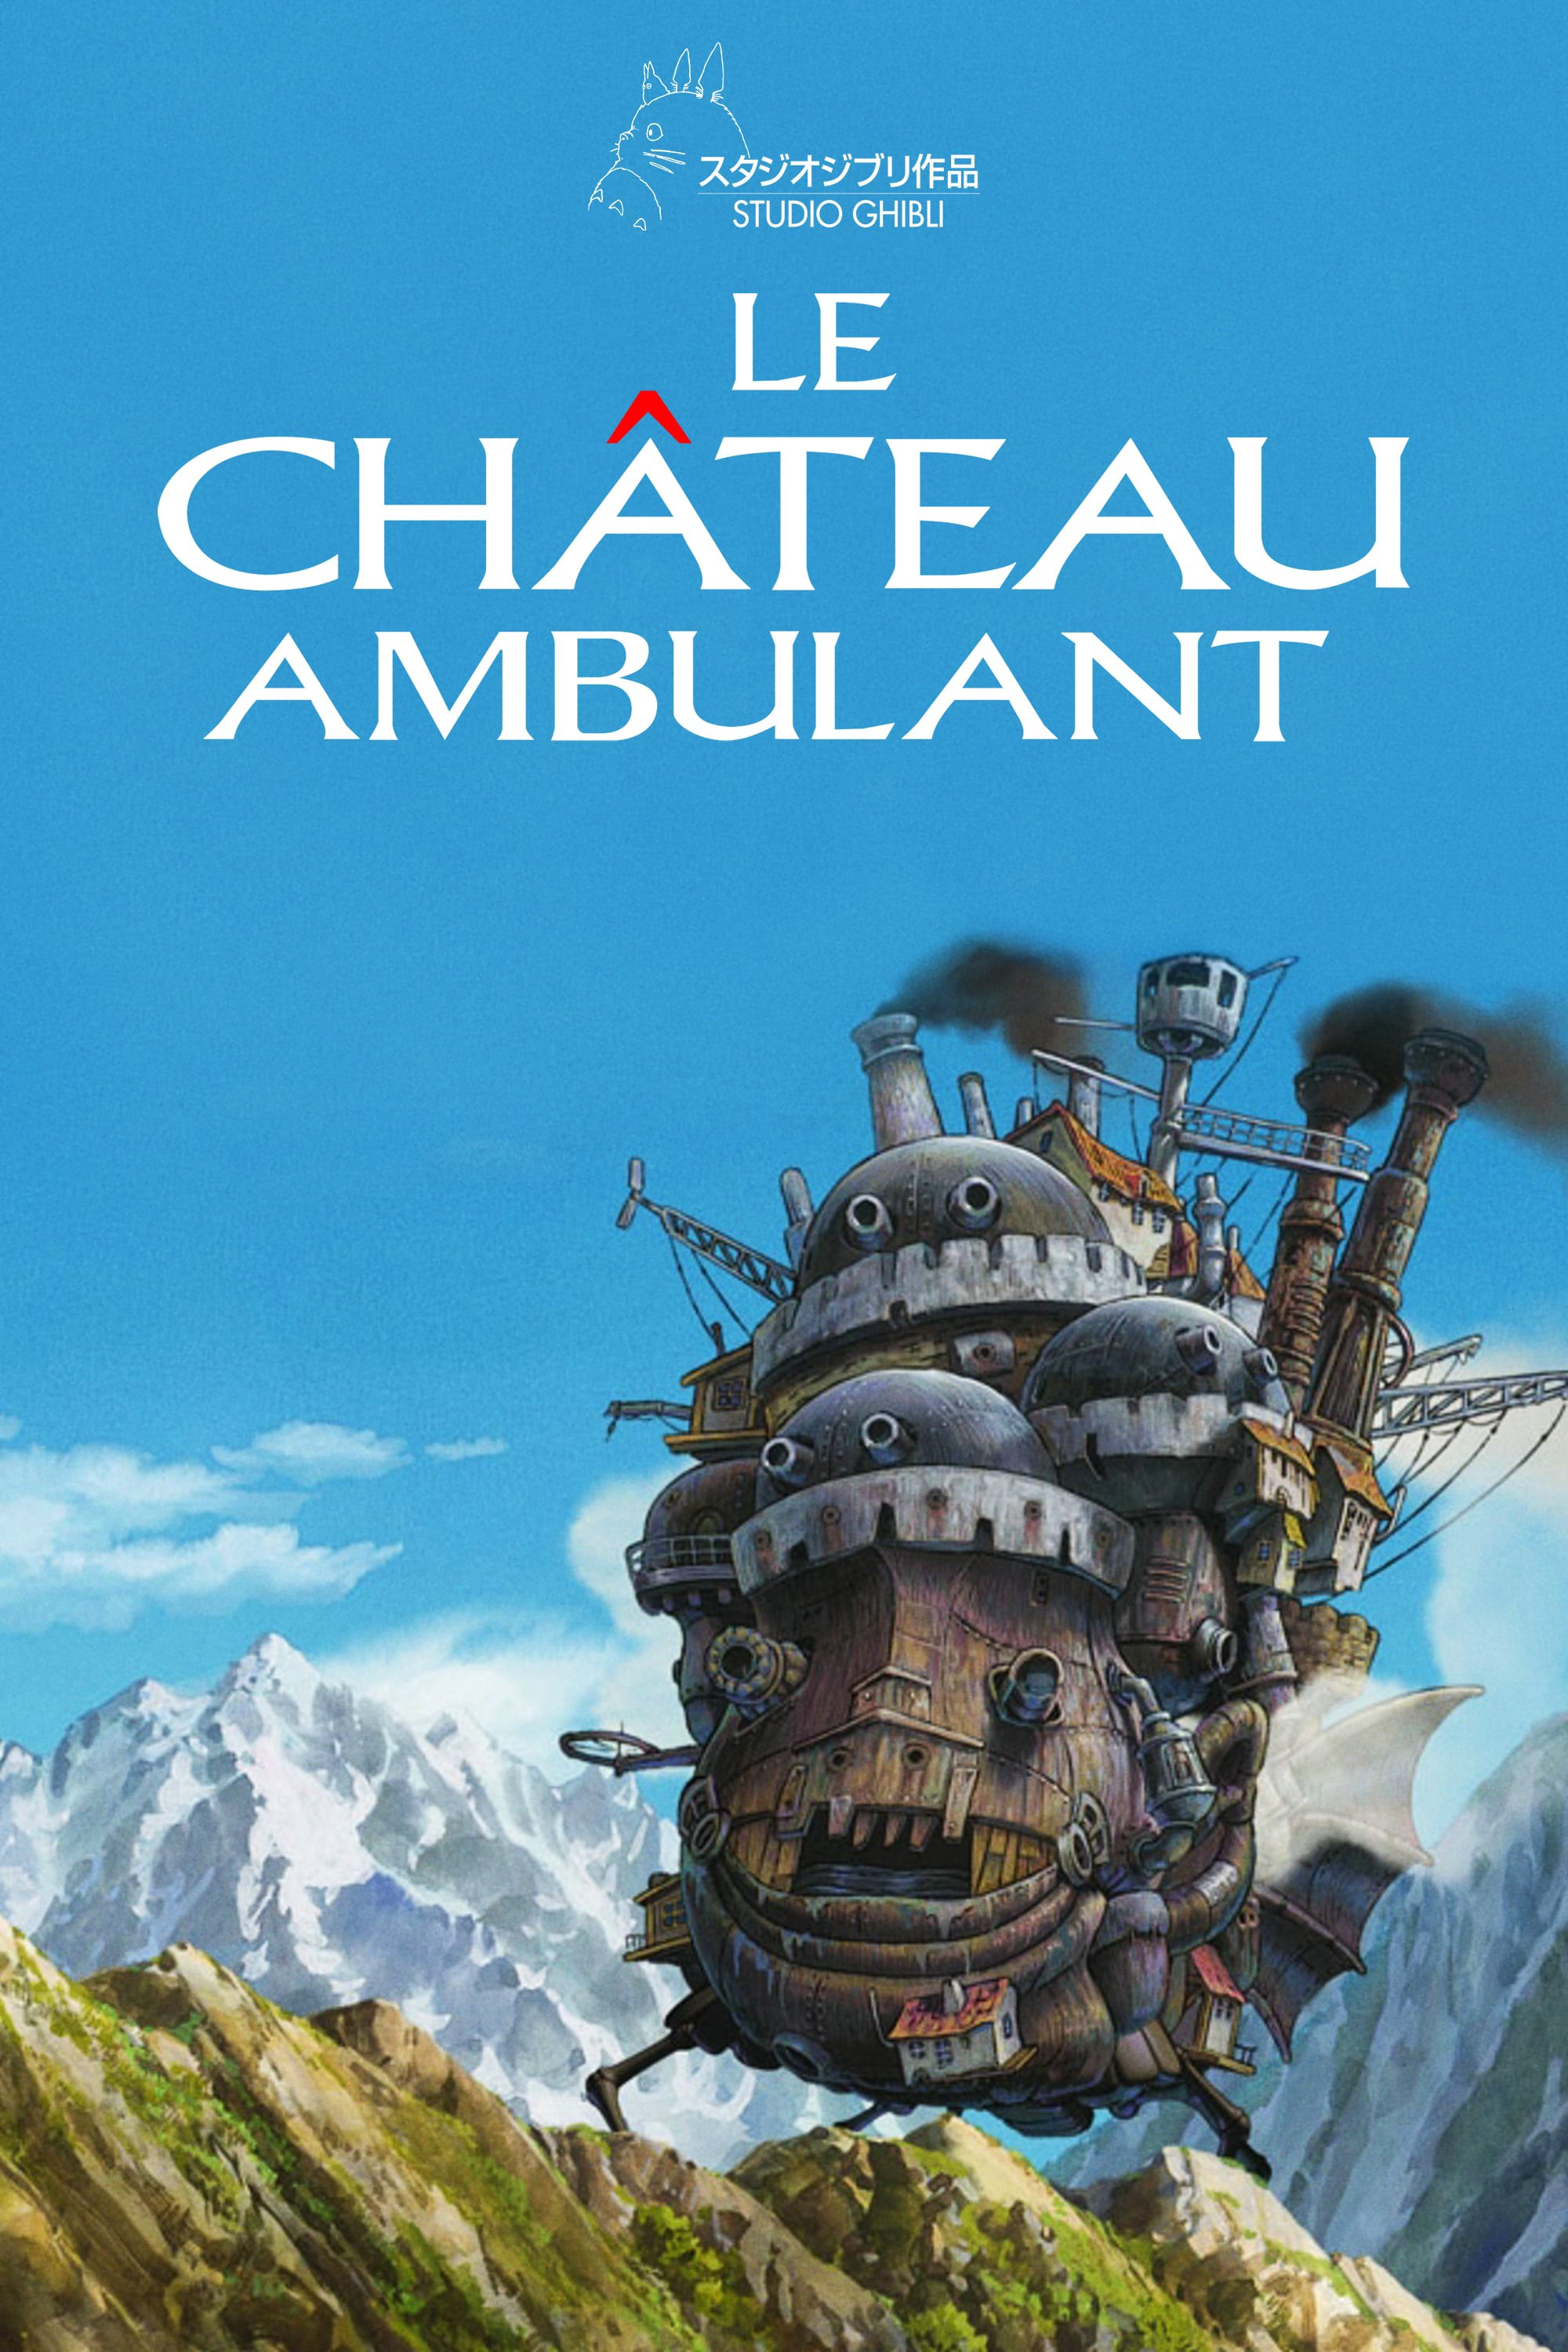 Chateau Dans Le Ciel Streaming : chateau, streaming, Netflix:, Films, Ghibli, Arrivent, Plate-forme, Streaming